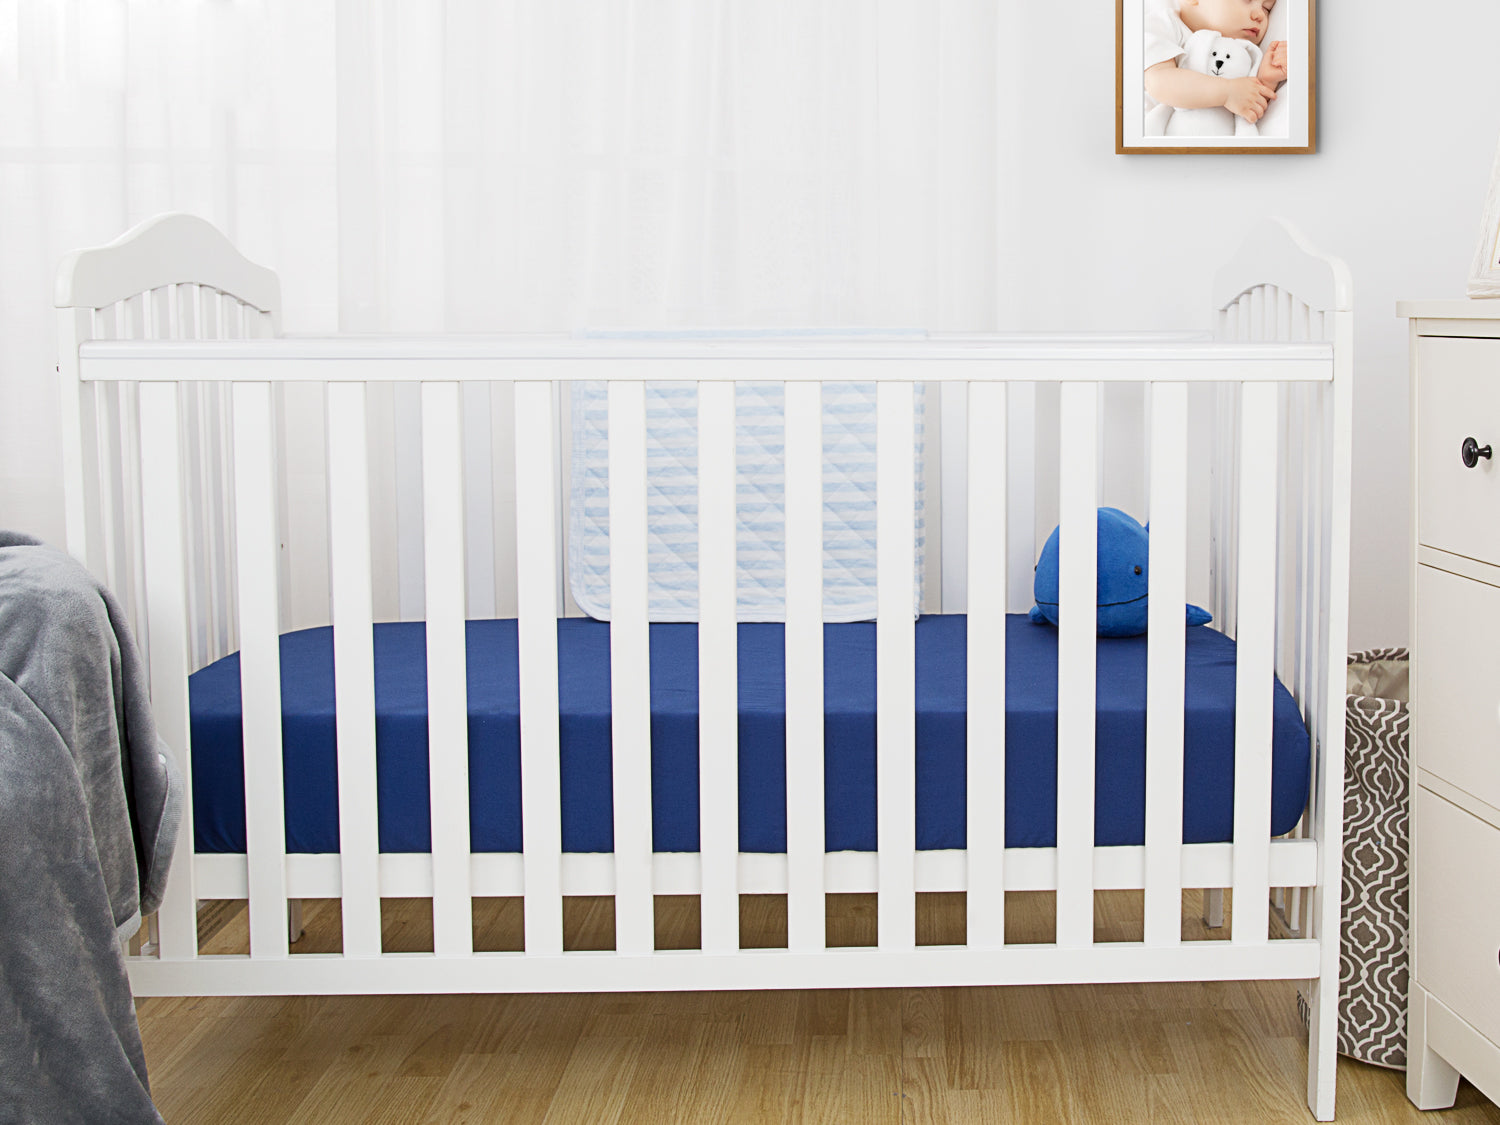 100% Cotton Crib Sheets 2PK - Pale Gray & Navy Blue